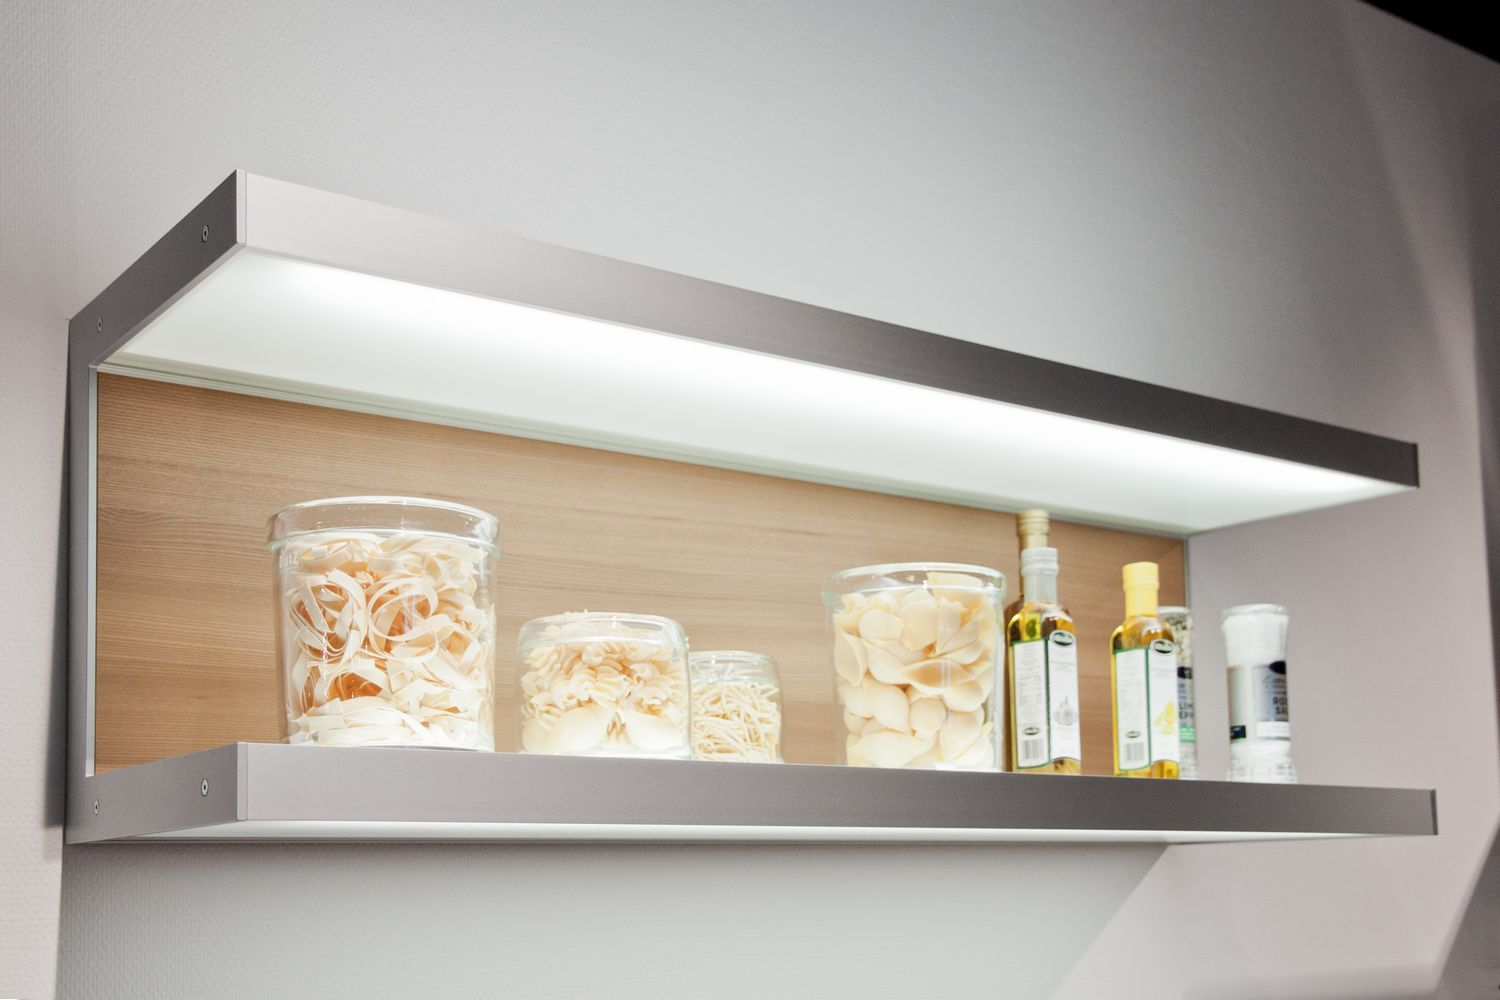 Lighting A Trend In The Kitchen A Smart Solution For Your Needs Kuche Haus